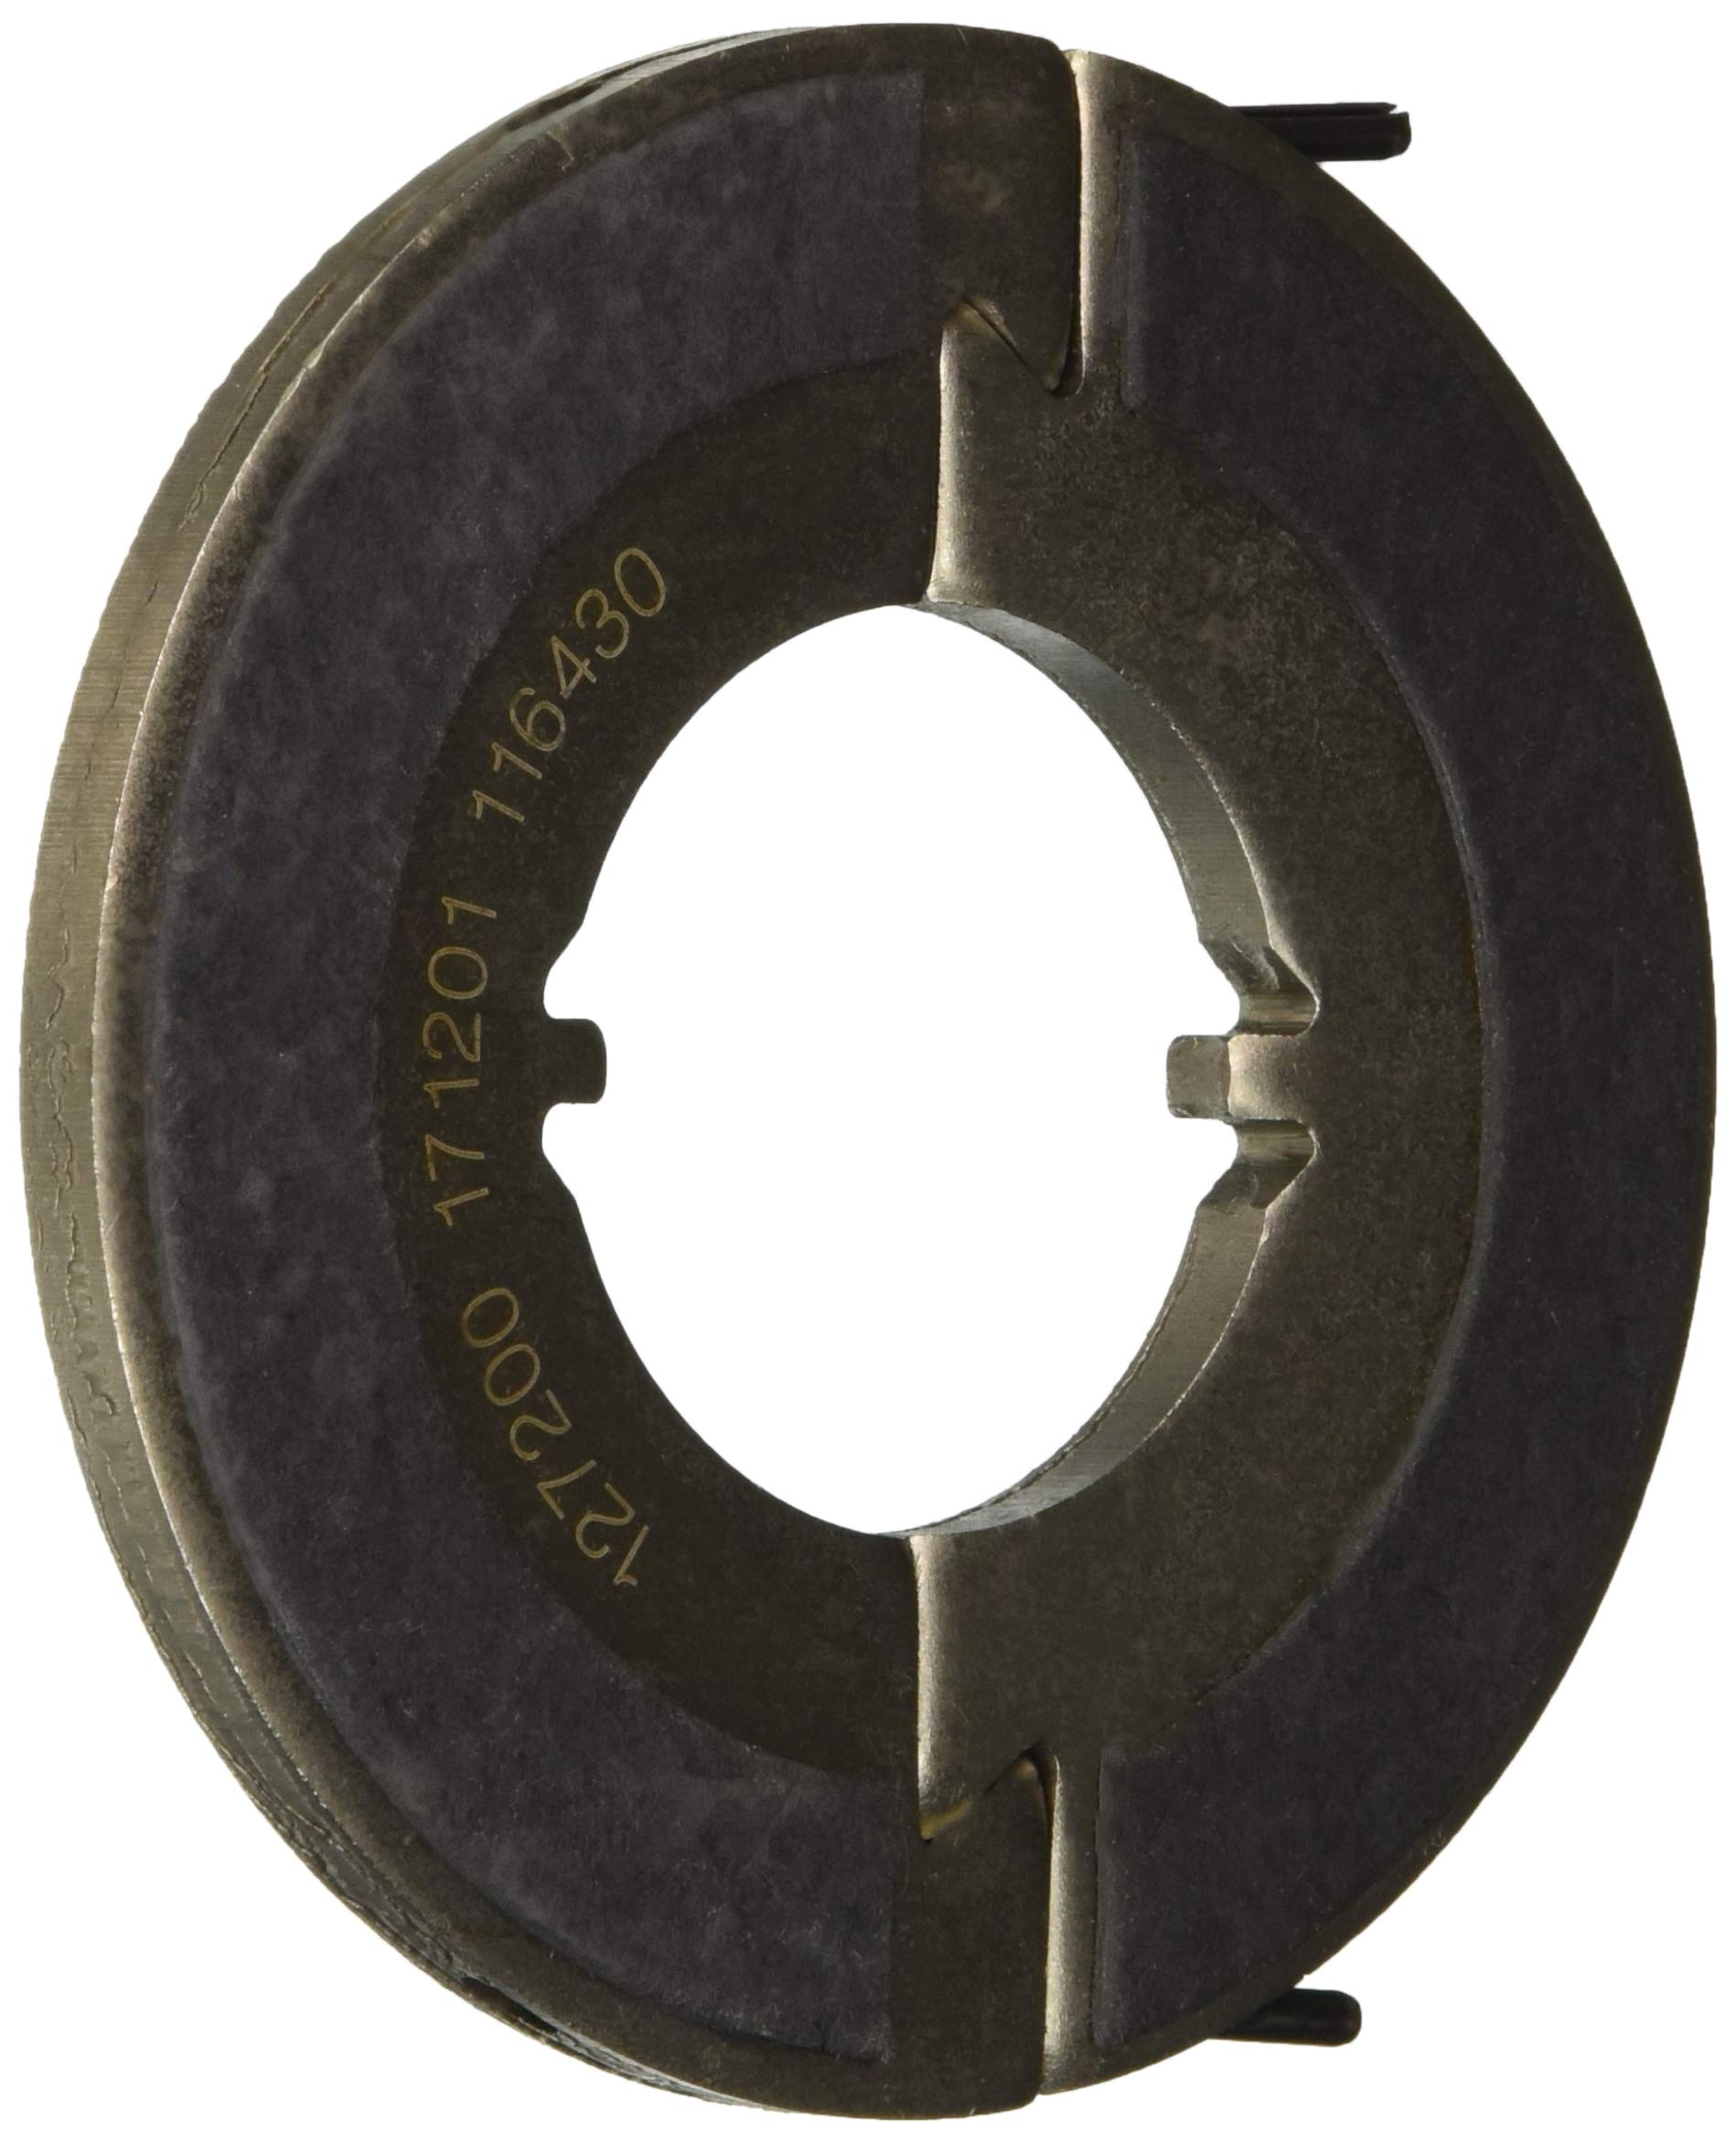 World American 127200 Clutch Brake (2'', 2 Piece Design) by World American